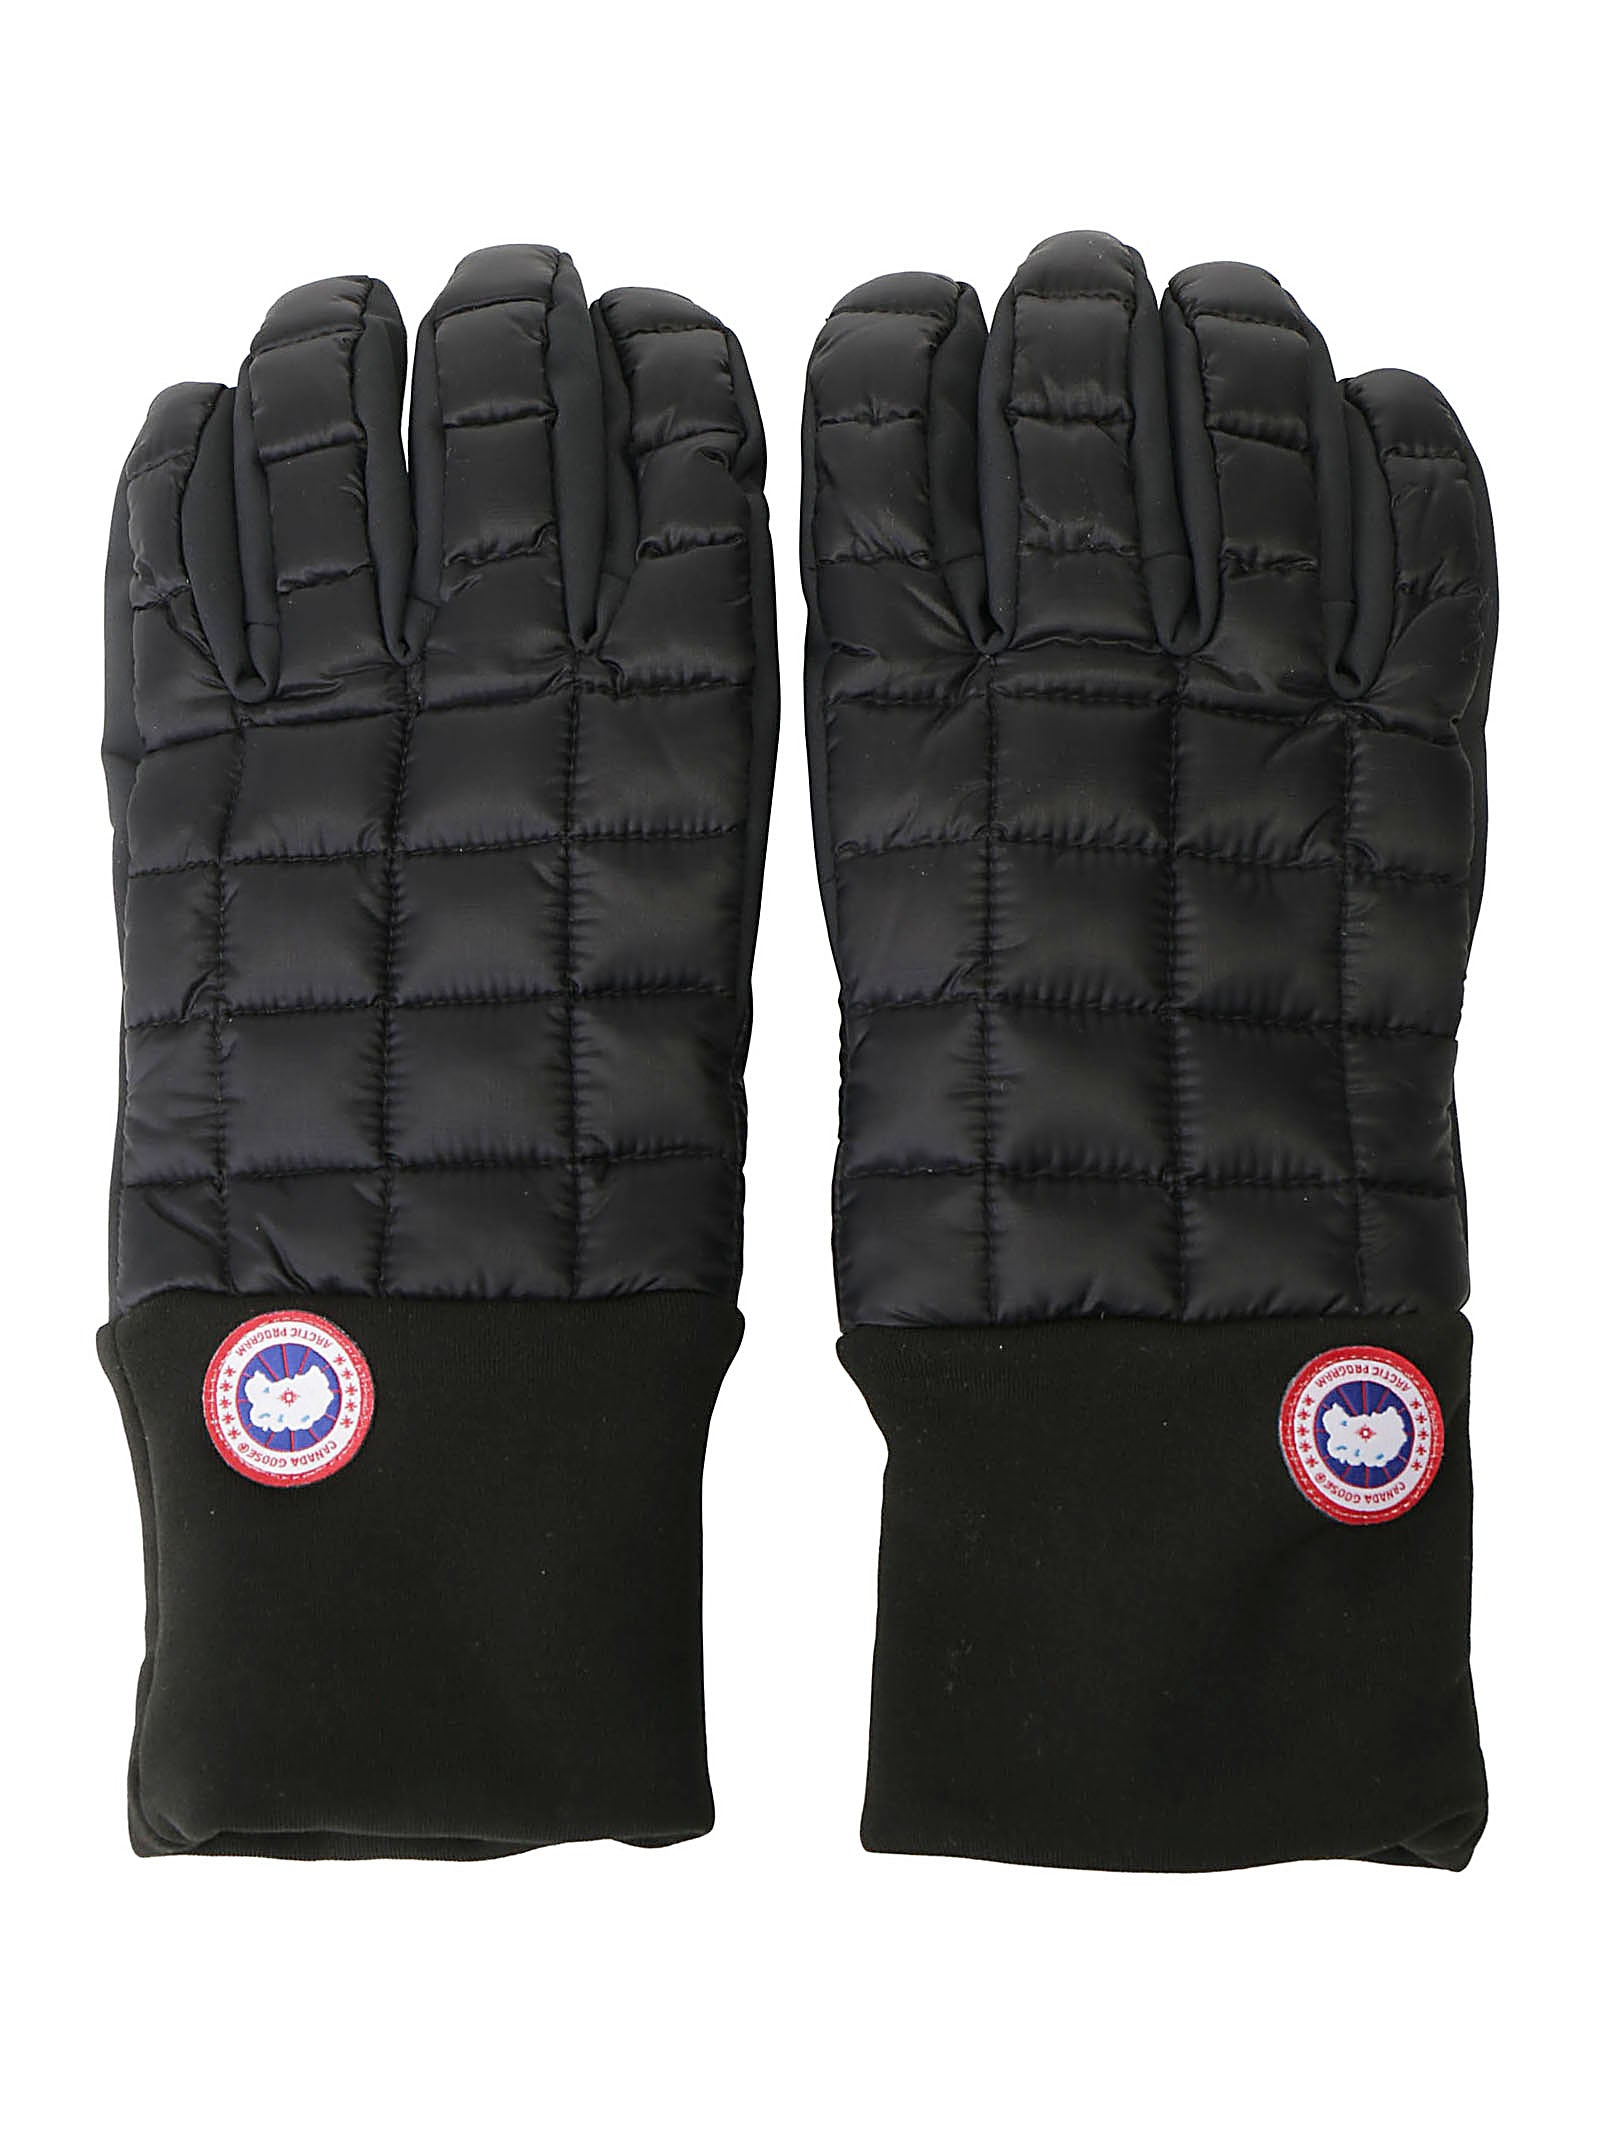 Canada Goose Gloves CANADA GOOSE PADDED GLOVES